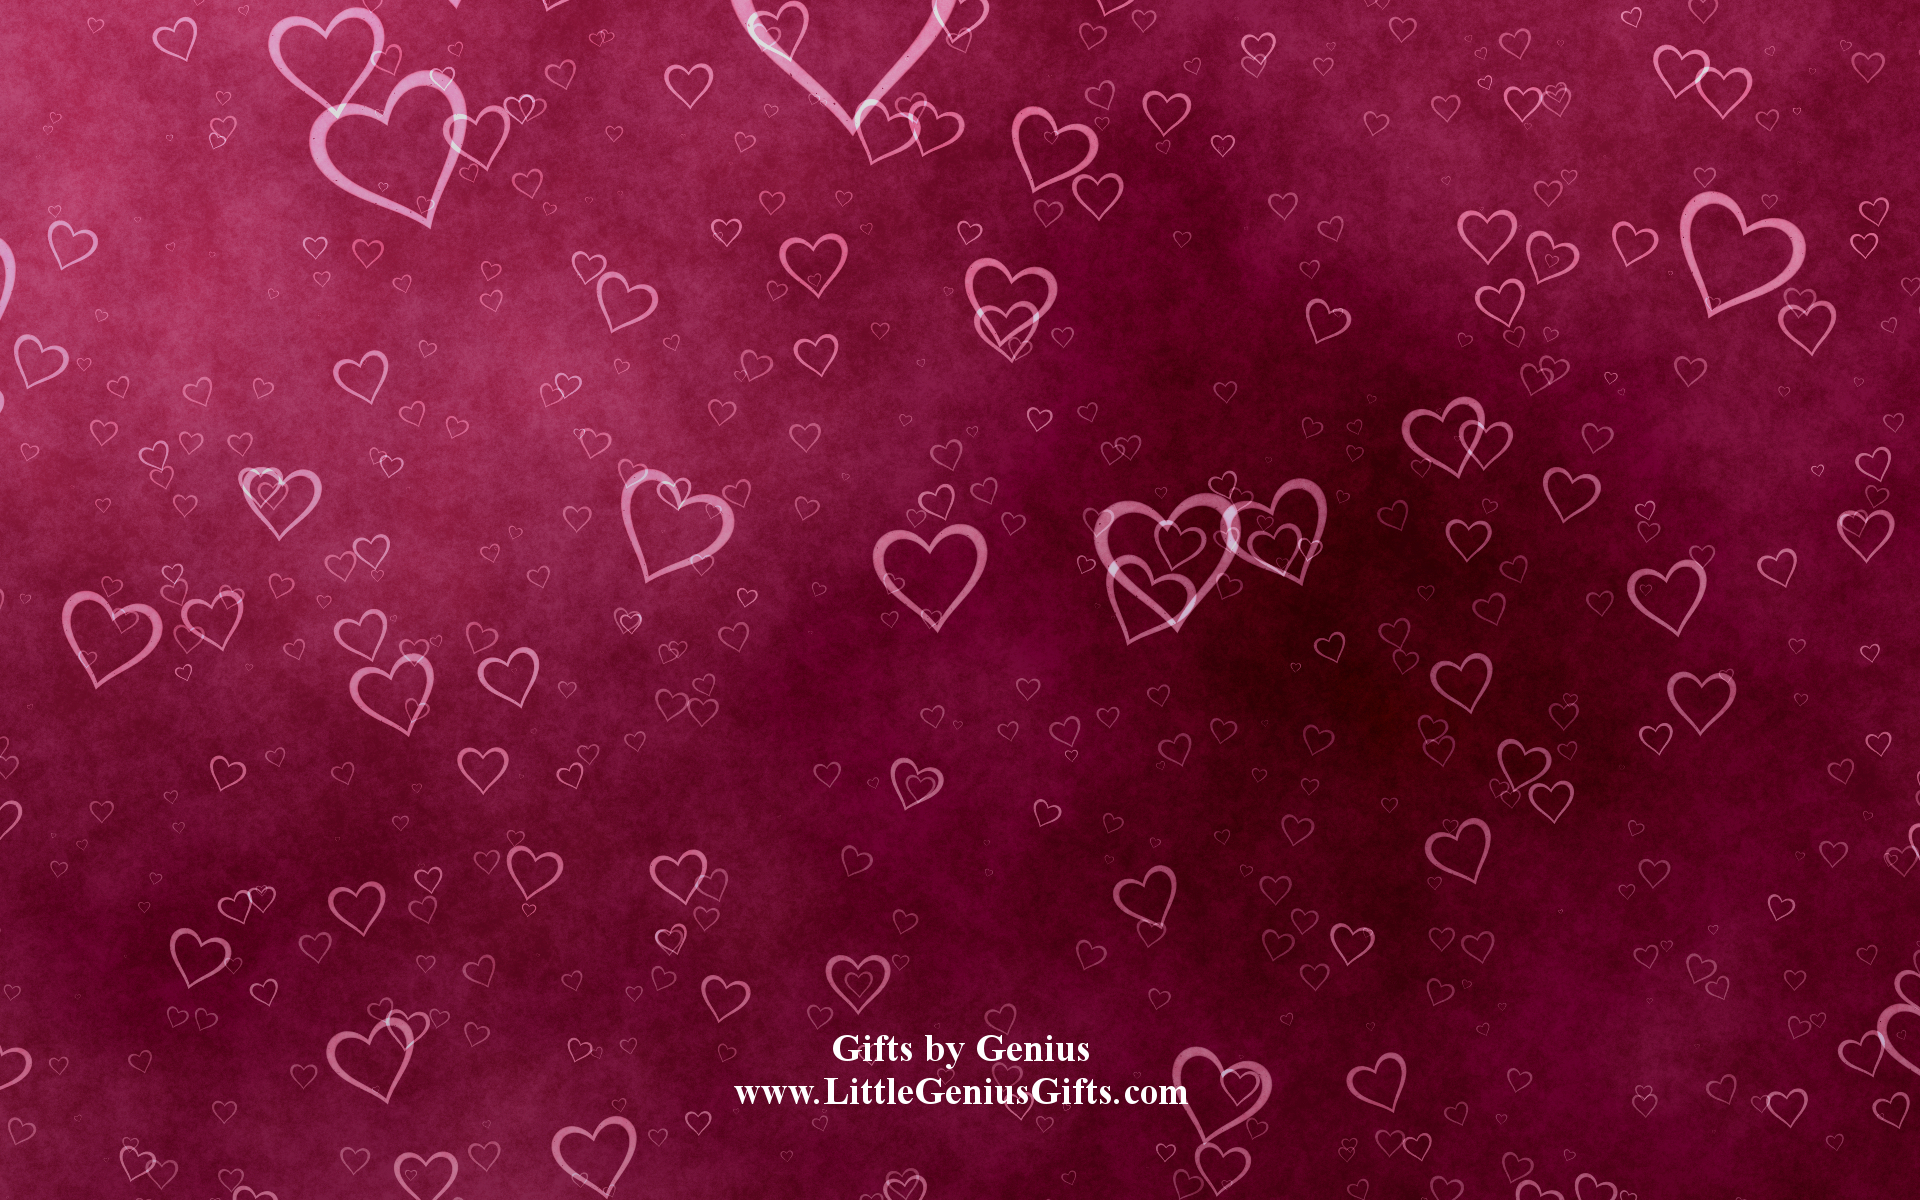 Valentines Day Computer Desktop Wallpapers Gifts by Genius 1920x1200